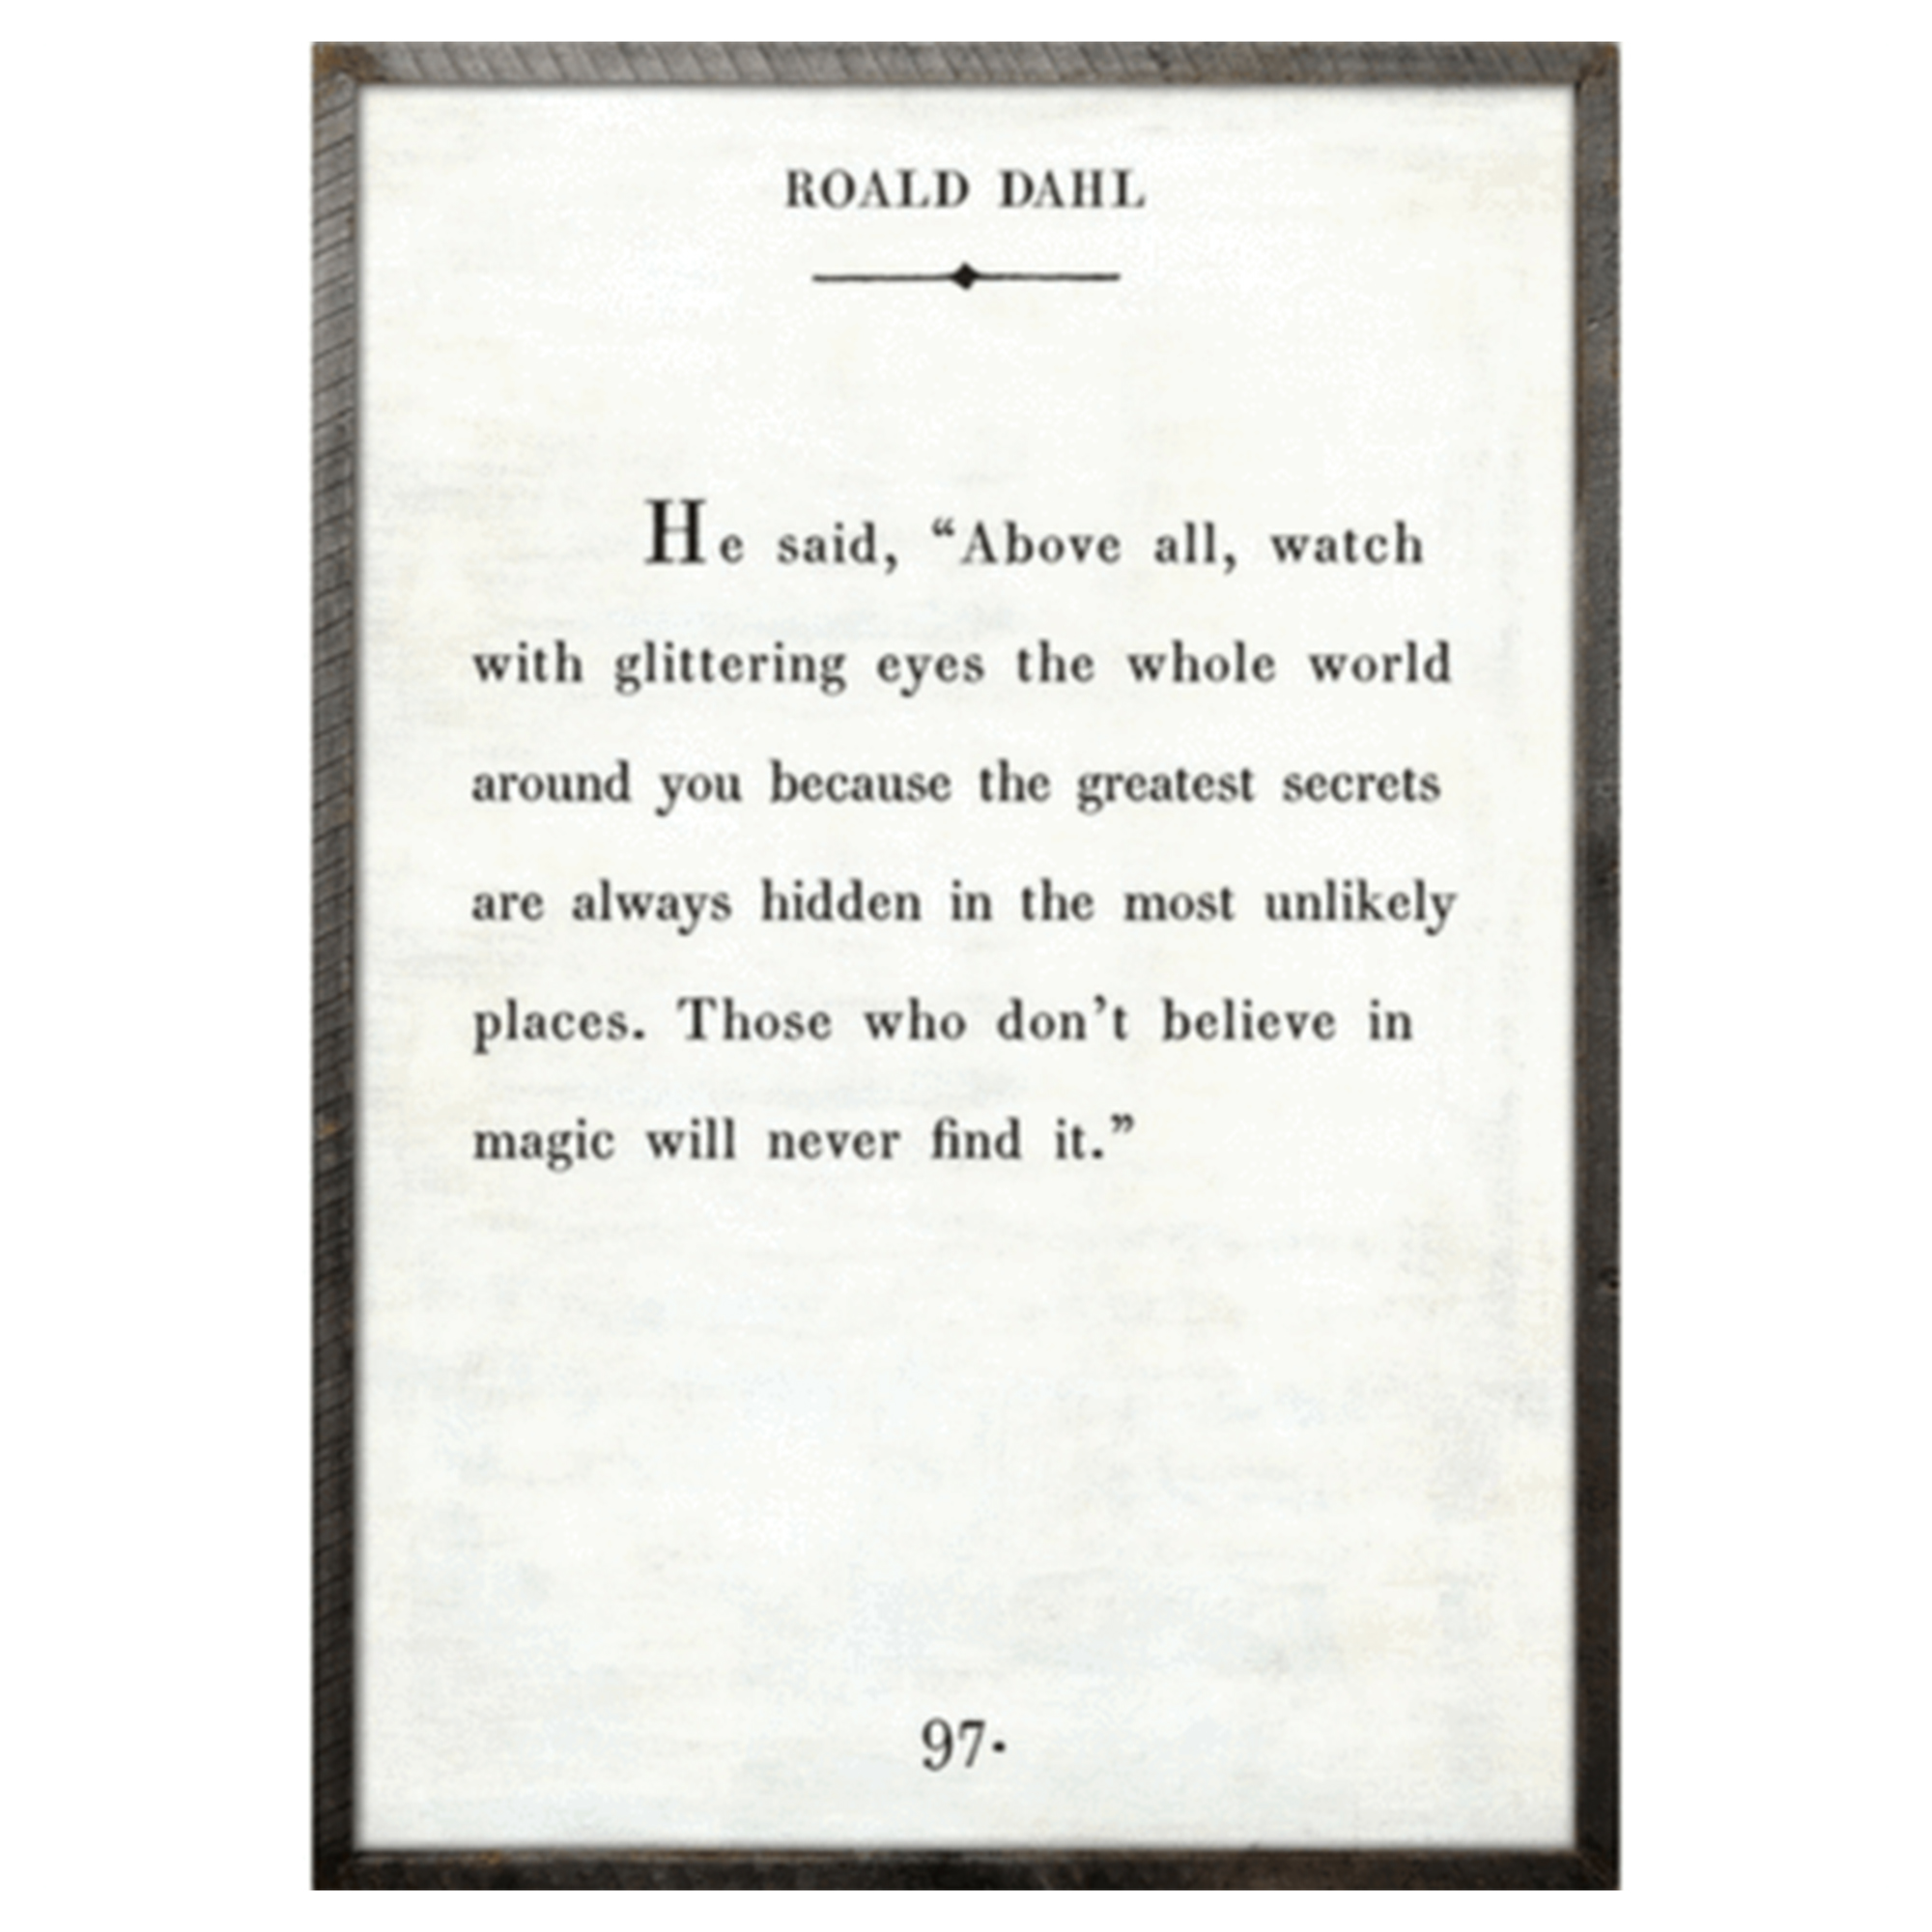 Roald Dahl Quote Print in Reclaimed Wood Frame